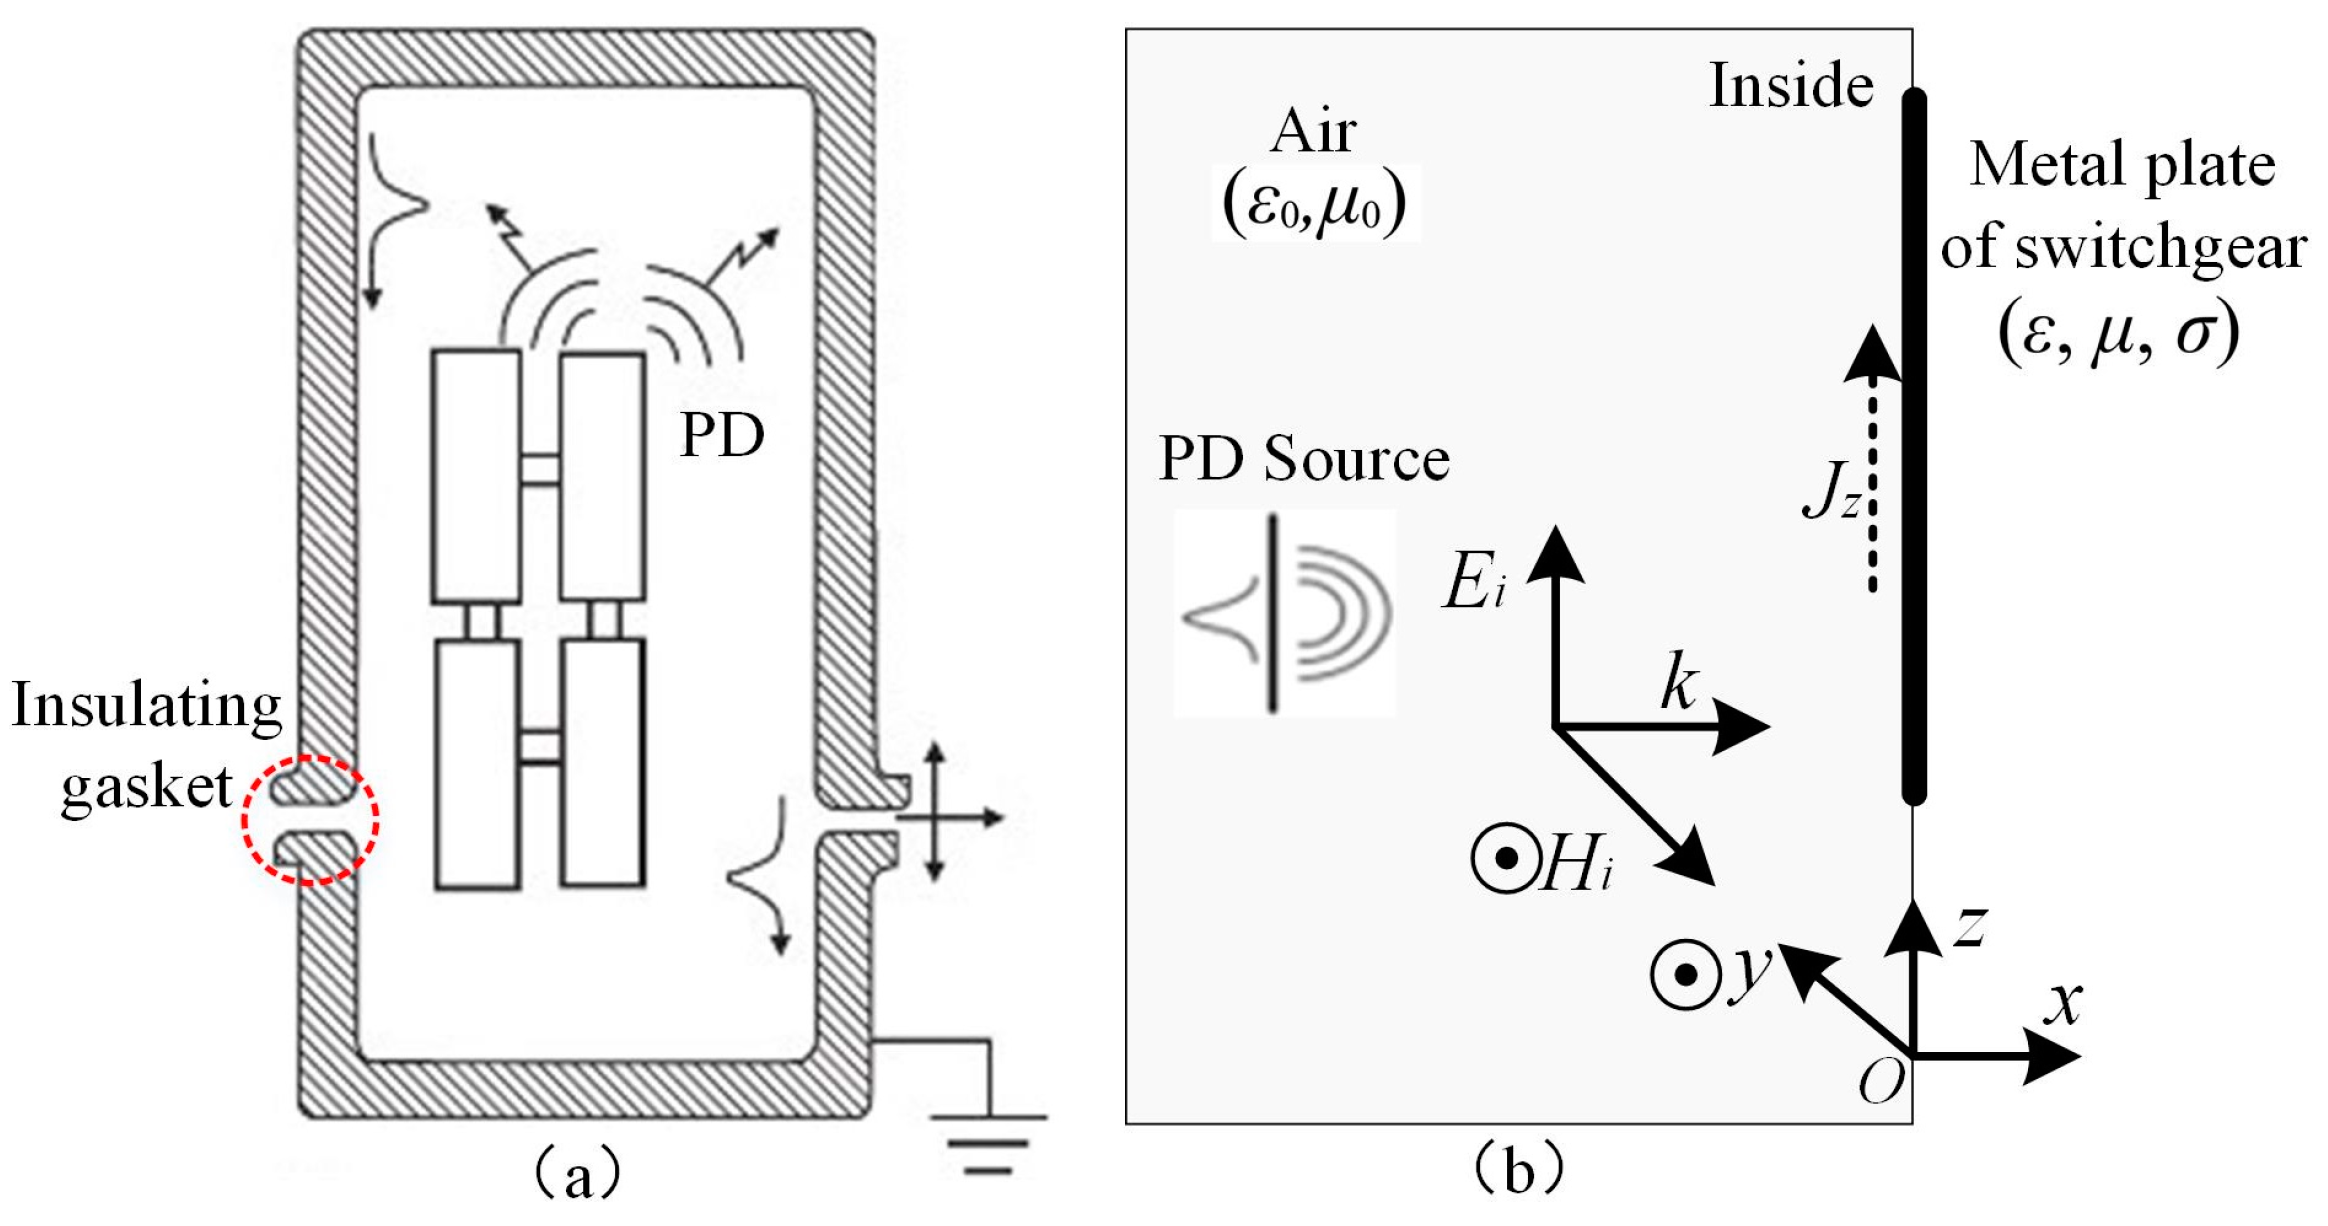 Sensors | Free Full-Text | Partial Discharge Monitoring on Metal ...